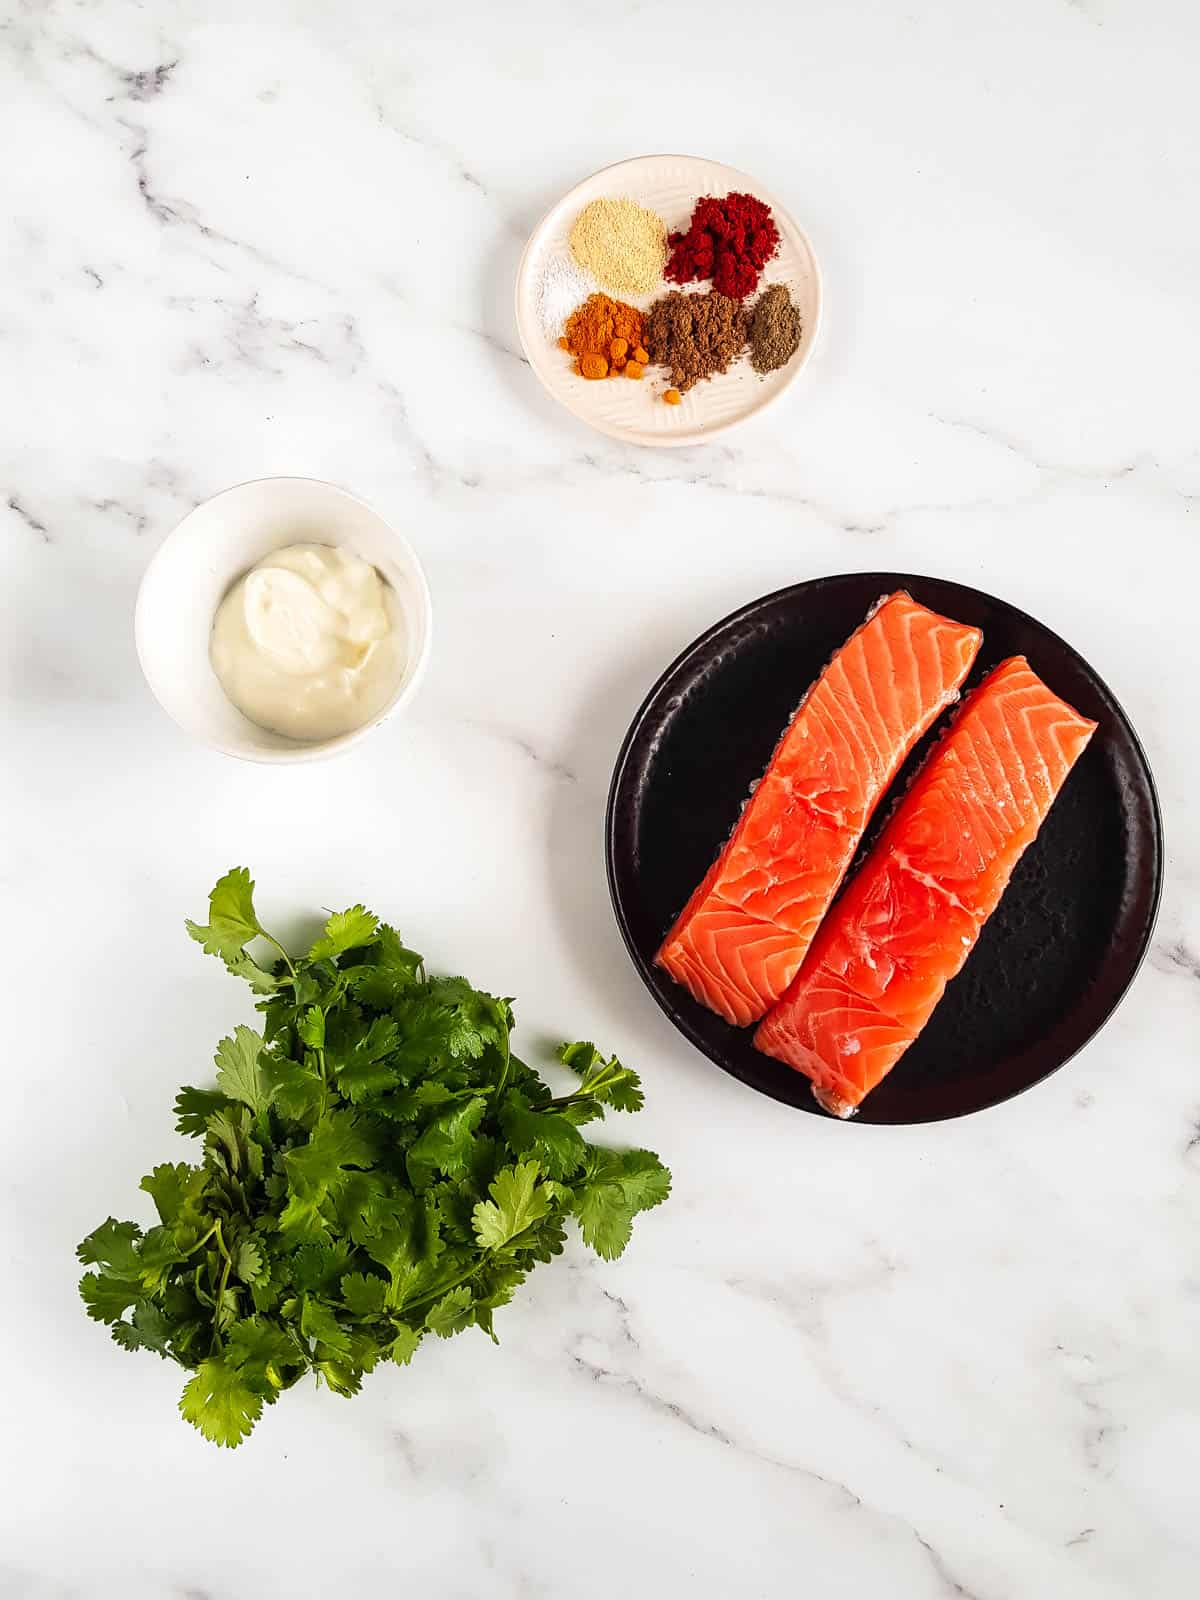 Ingredients for tandoori salmon laid out on a table.